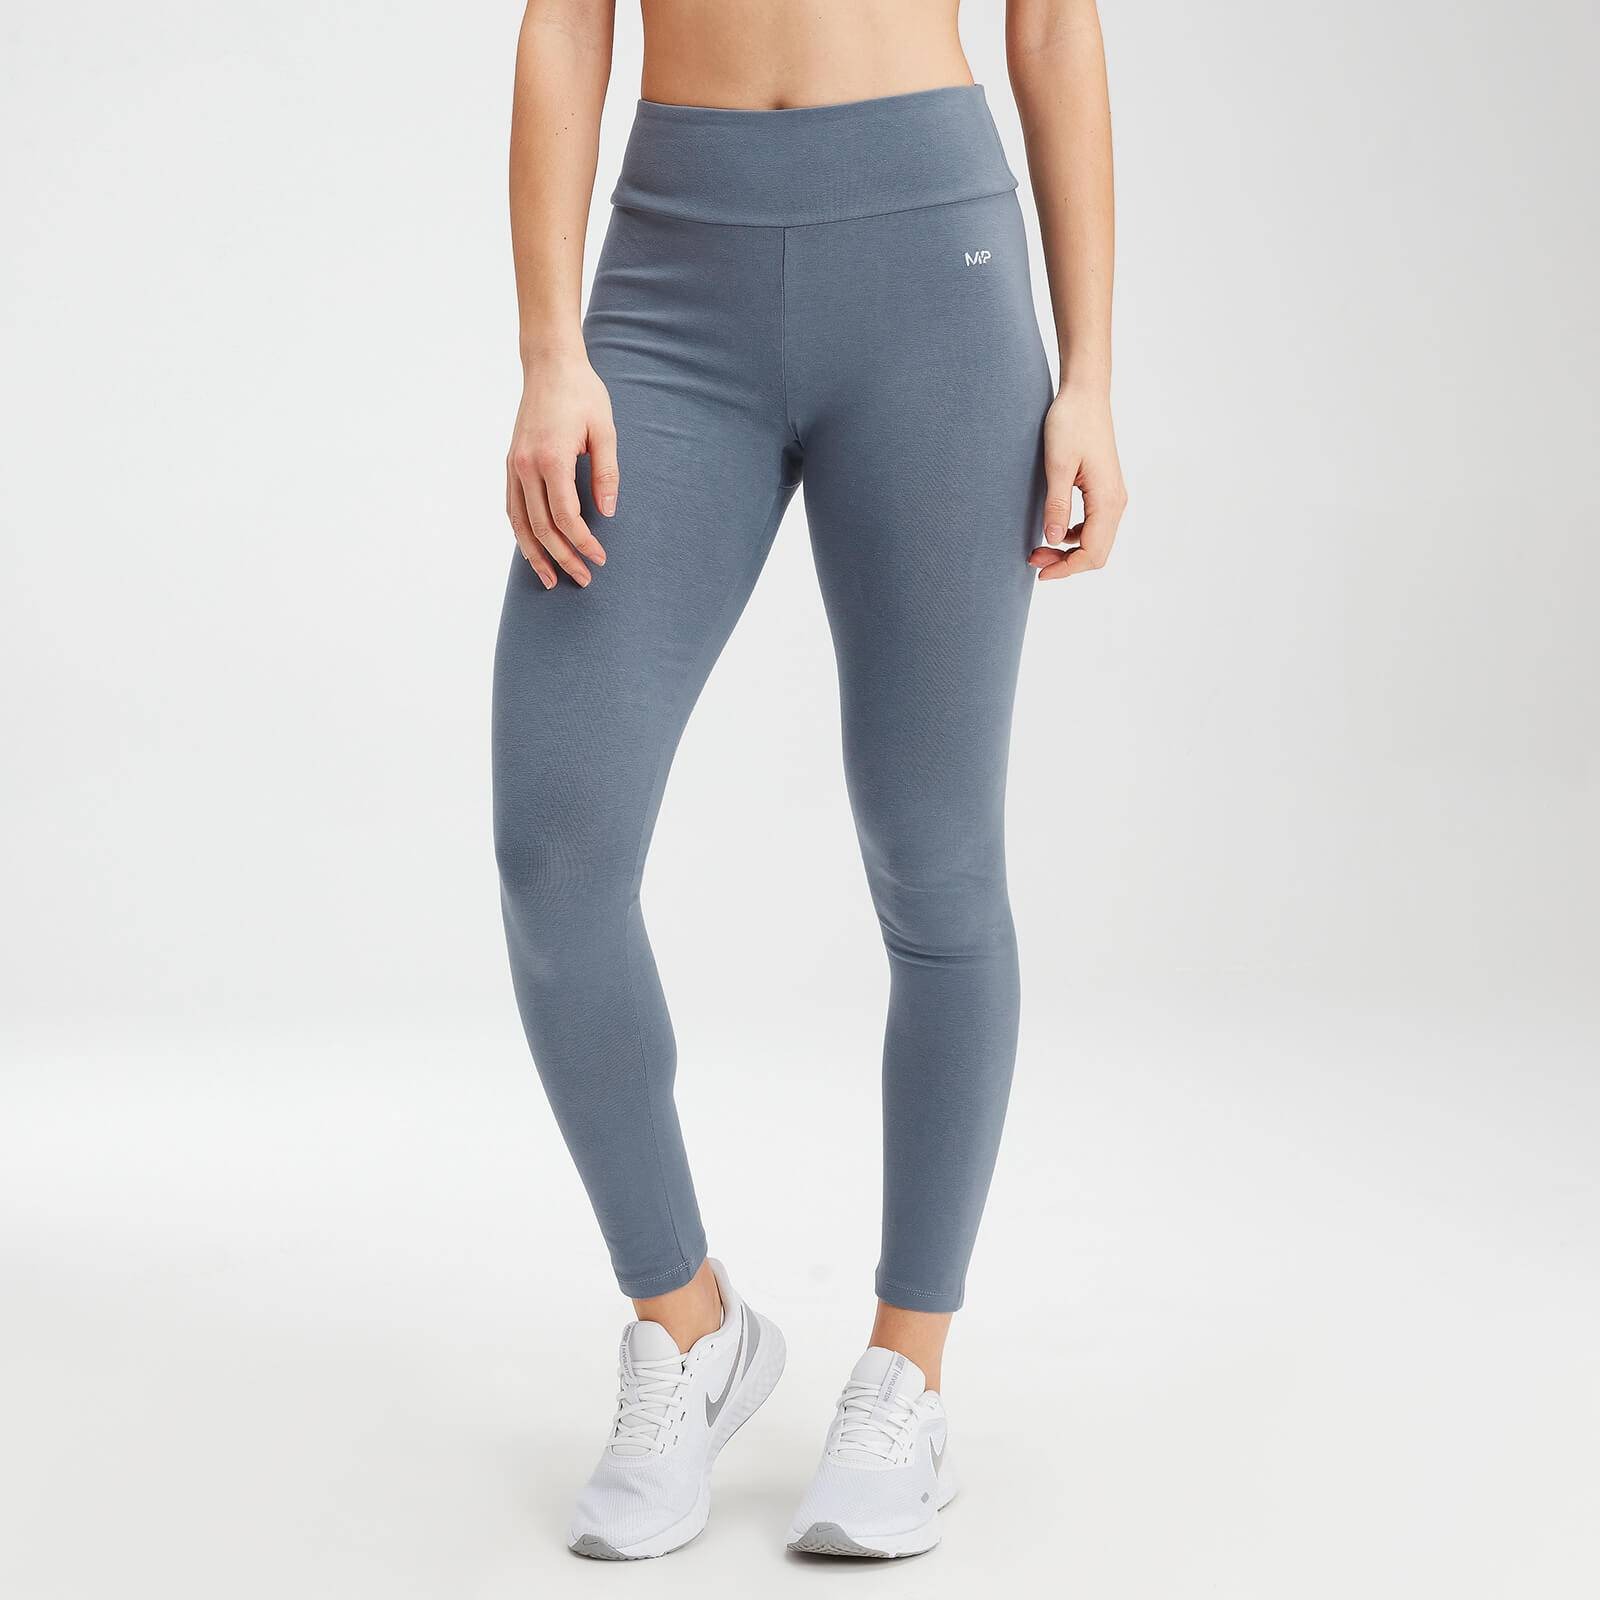 Mp Women's Essentials Leggings - Galaxy - L